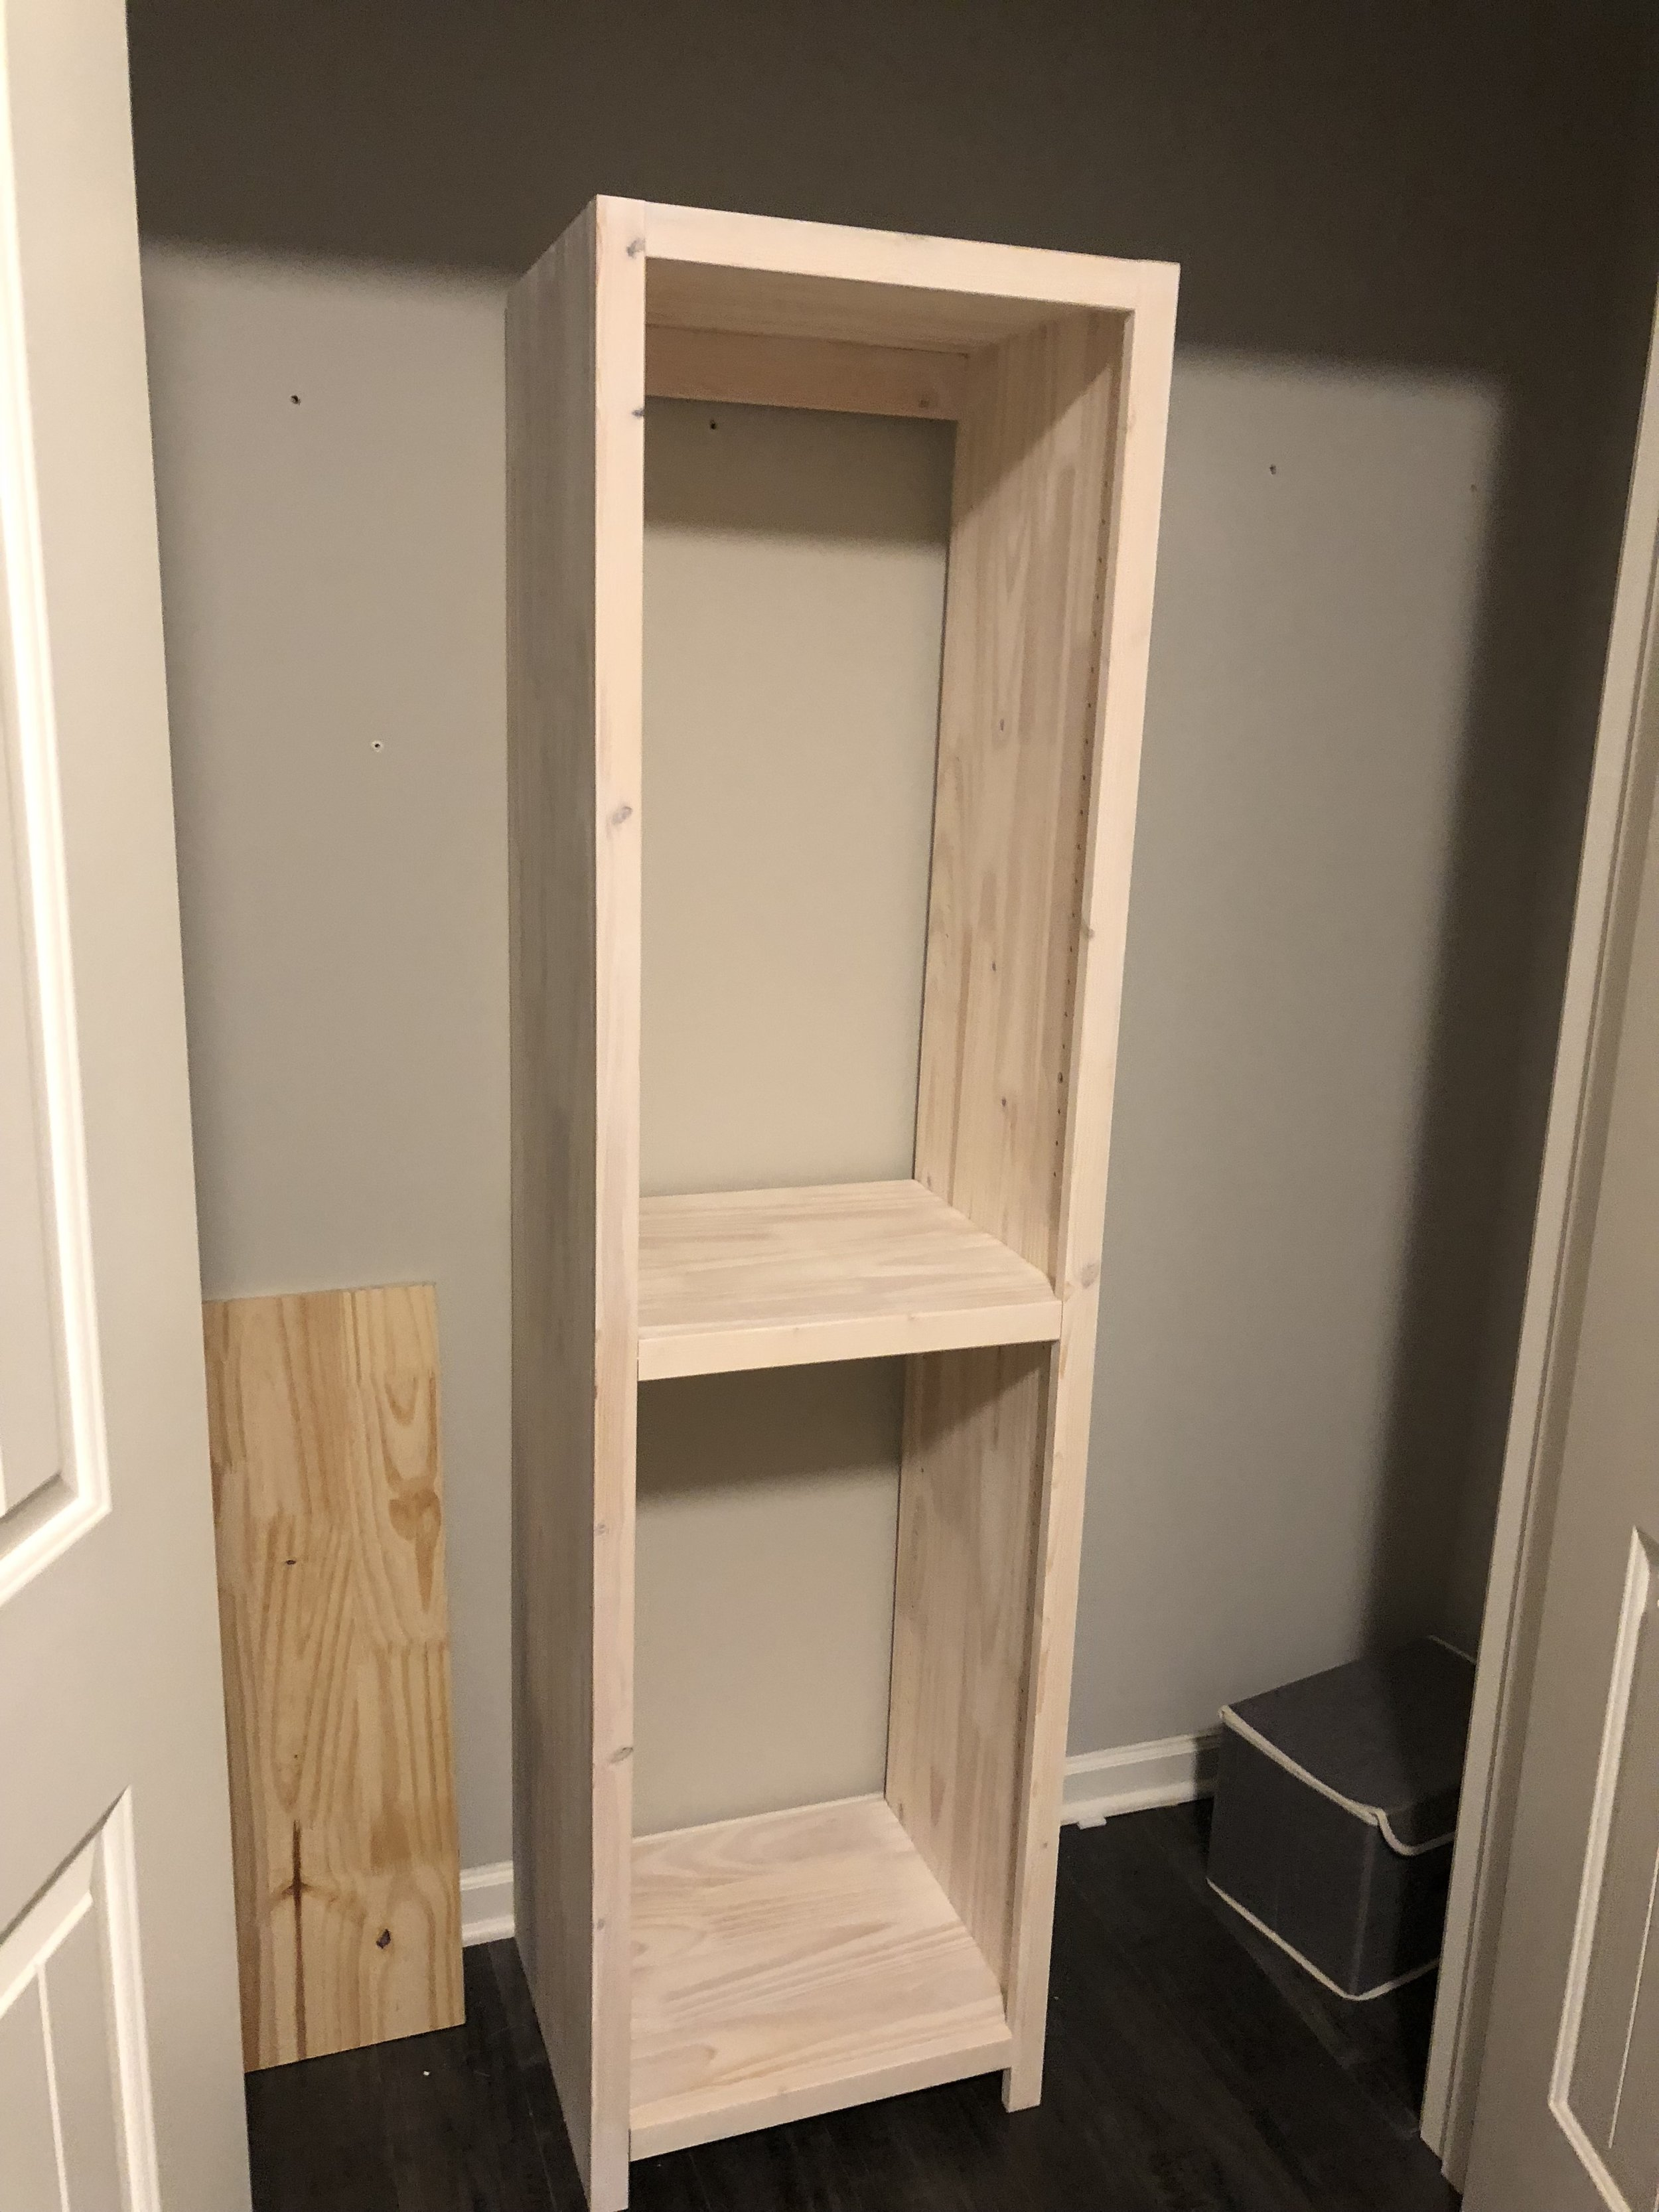 Test fit and Measure. - The shelf was placed in the closet and checked for clearance before anything else was done.